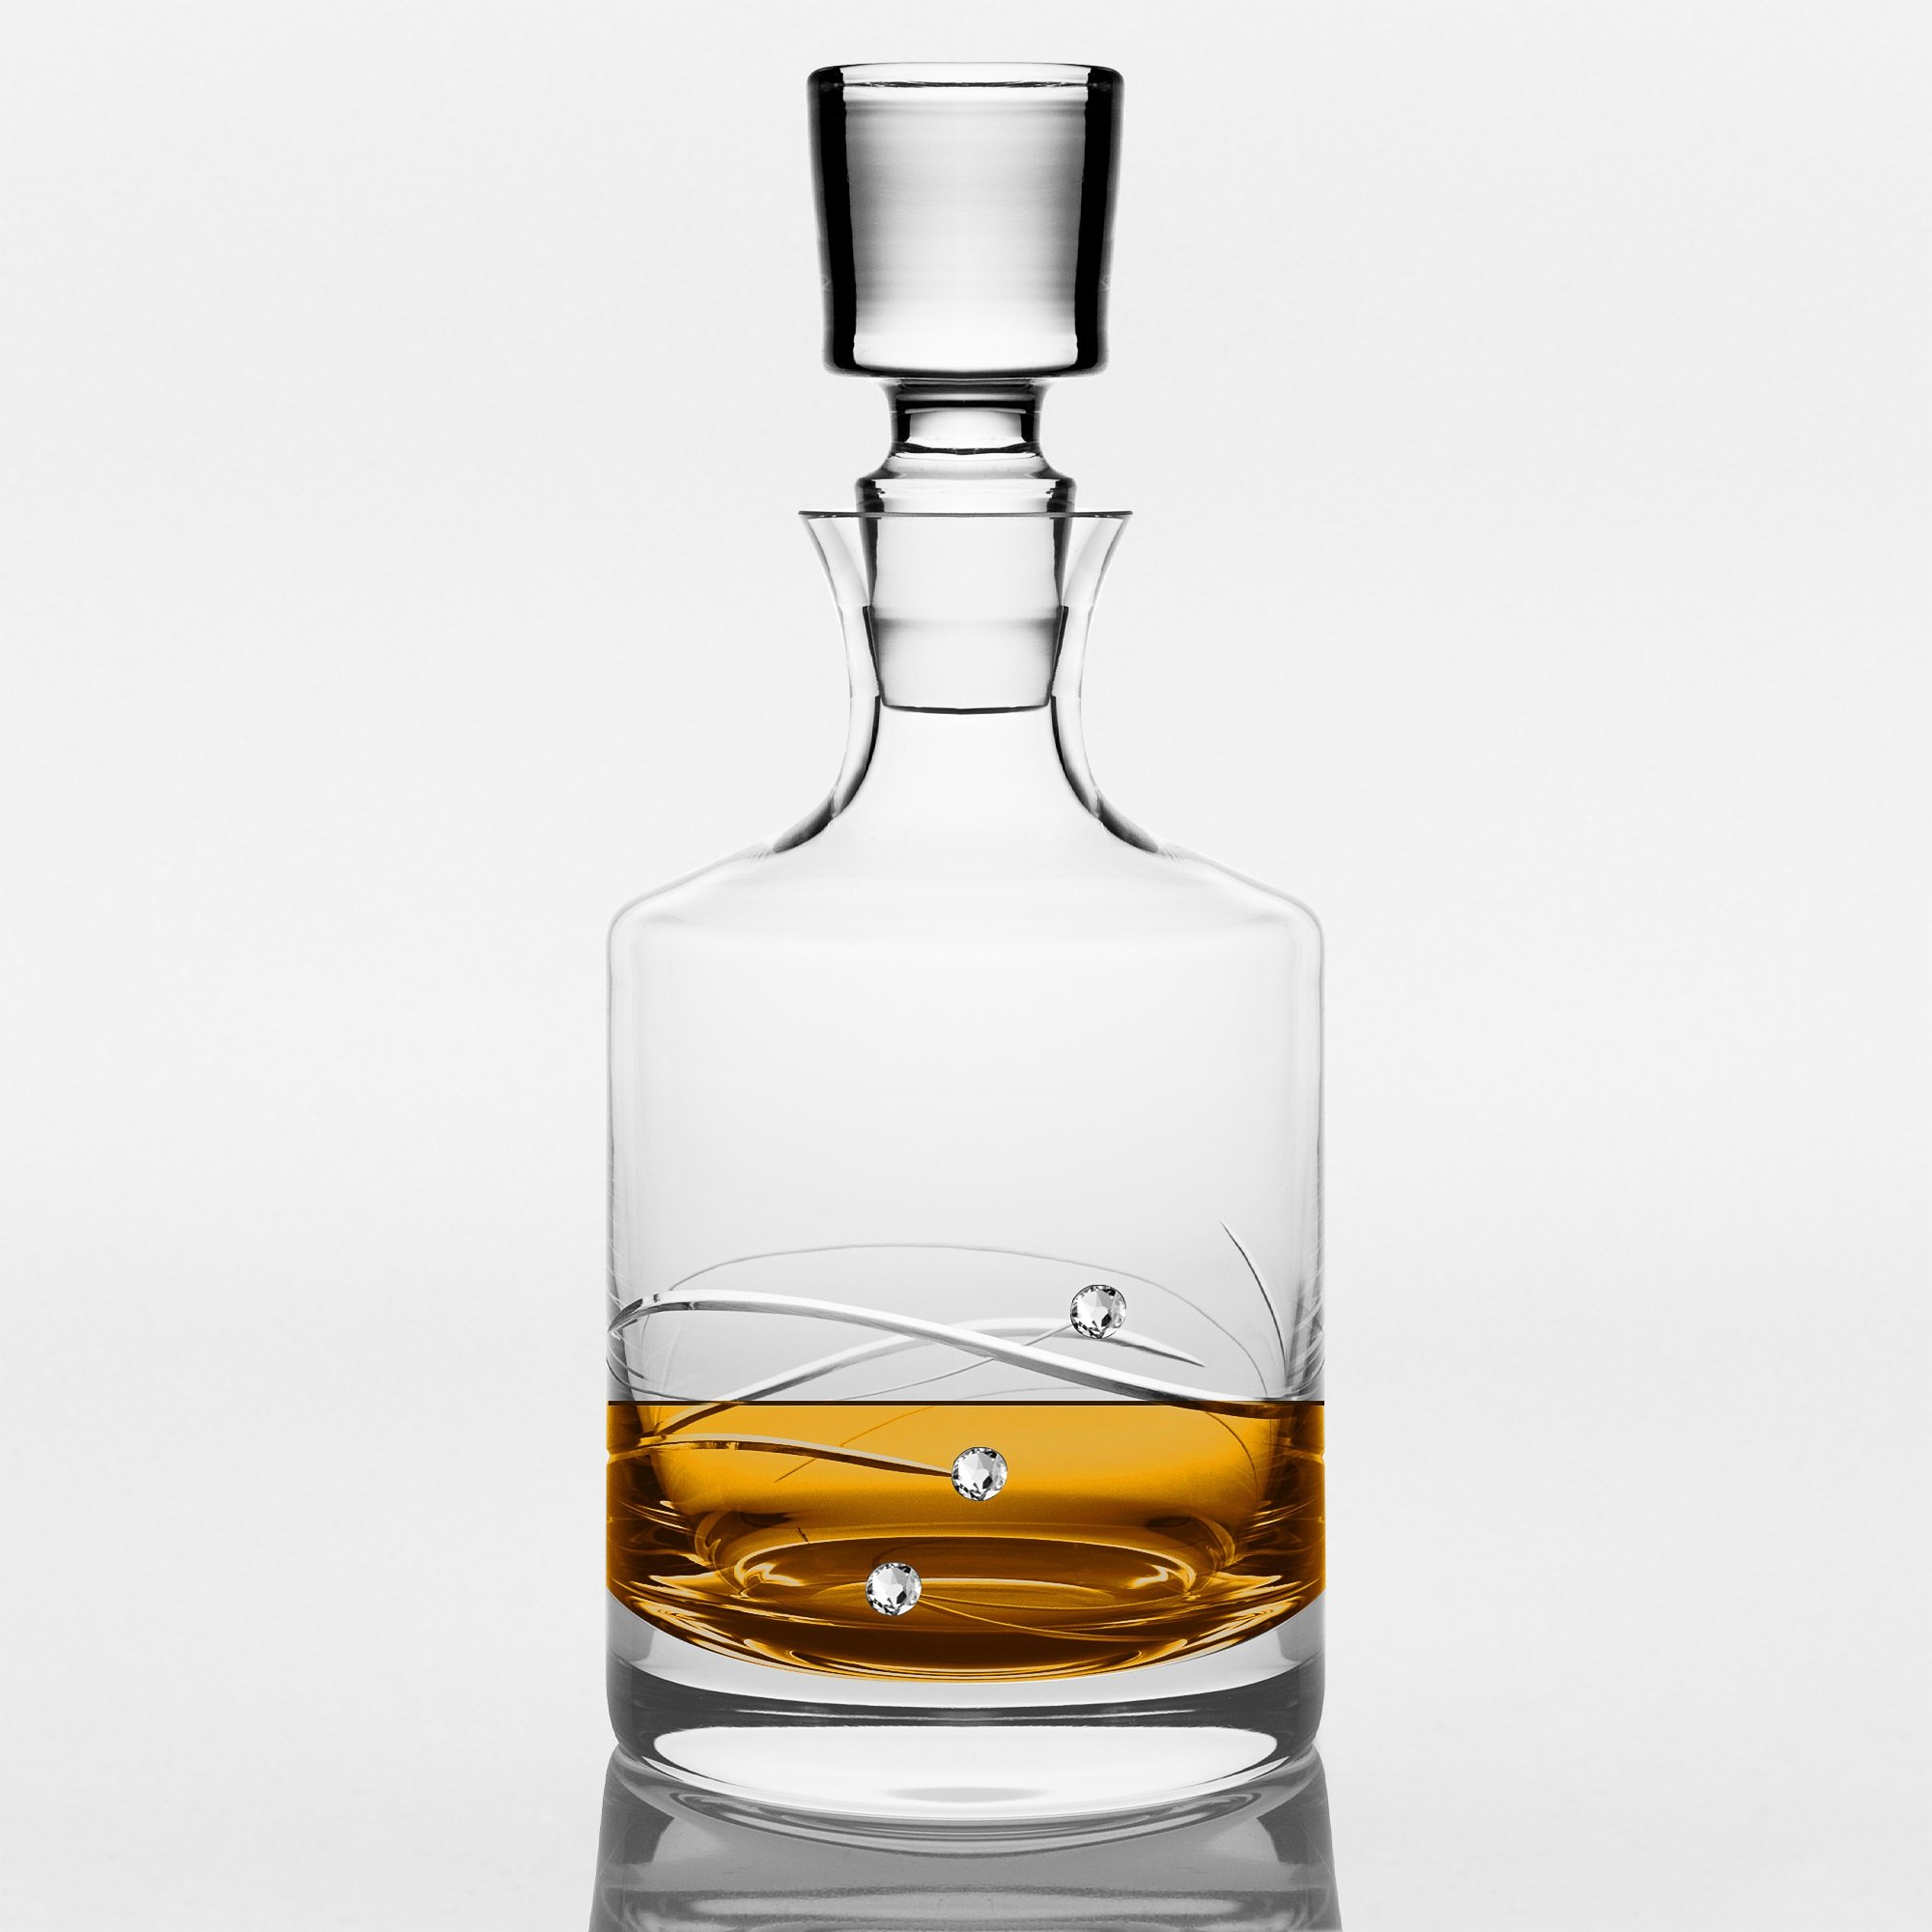 Barski - Handmade Glass - Sparkle - Whiskey Decanter - Decorated with Real Swarovski Diamonds - Gift Boxed - 26 oz .- Made in Europe